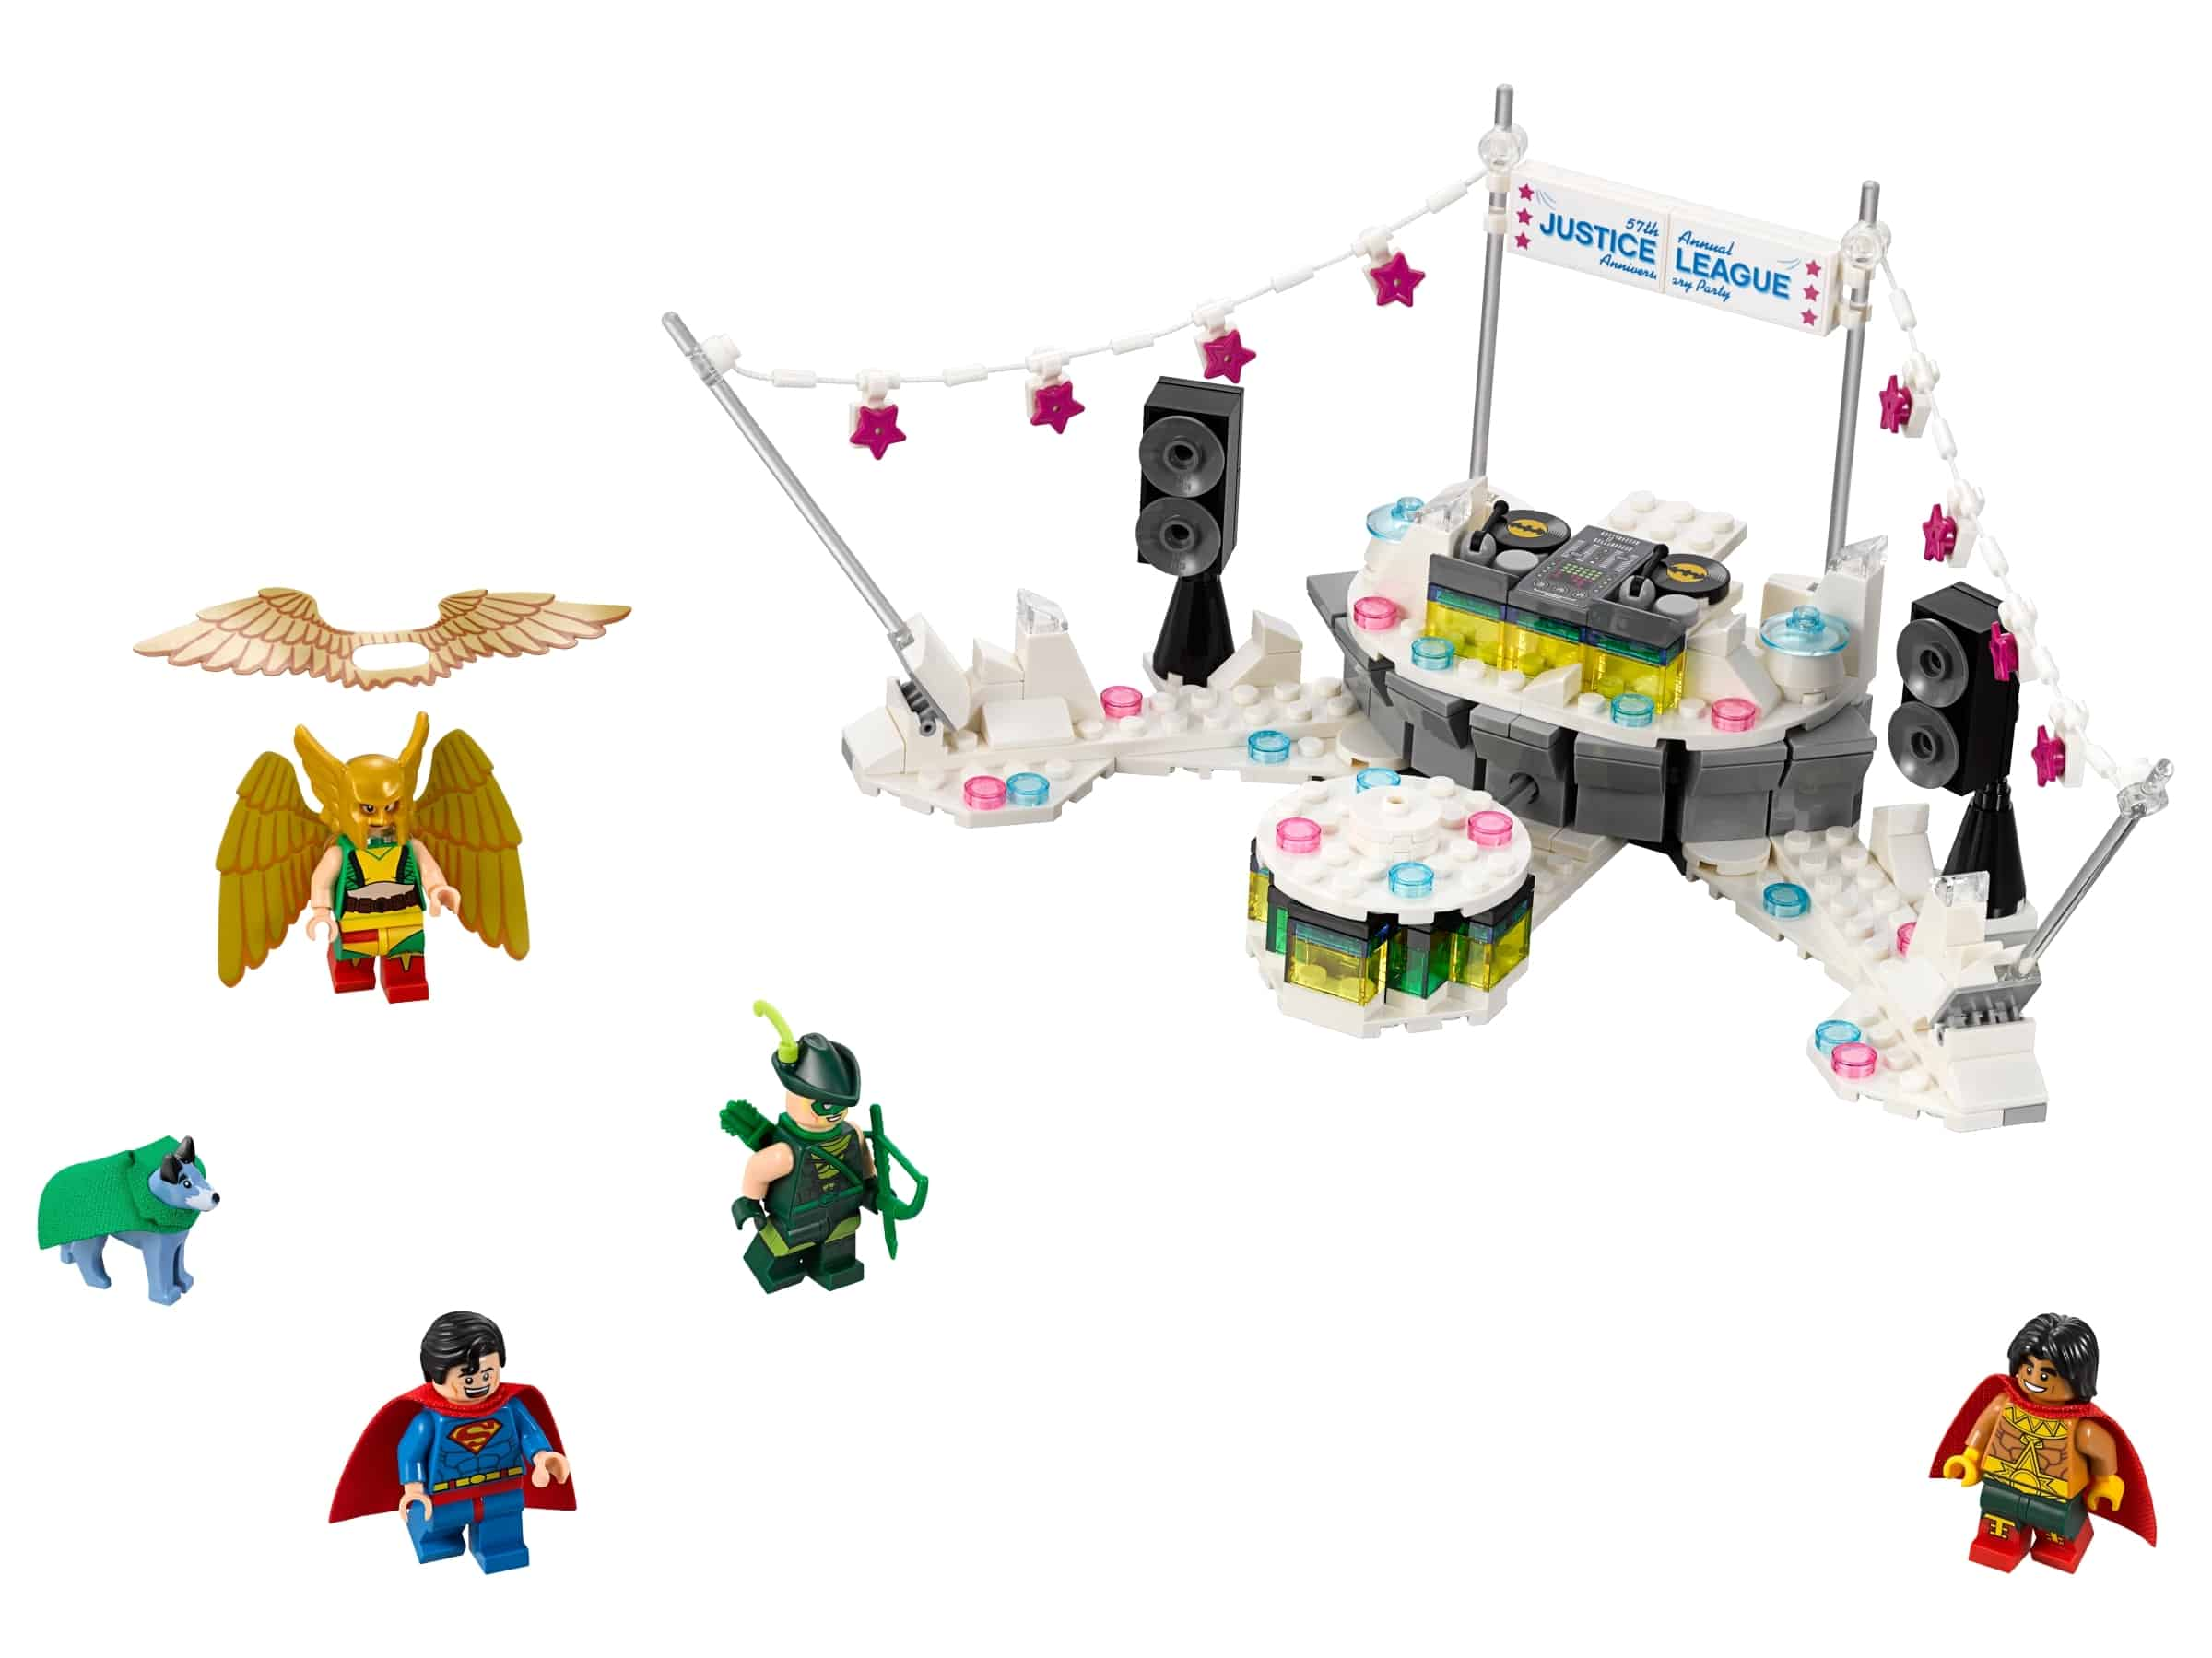 lego het justice league jubileumfeest 70919